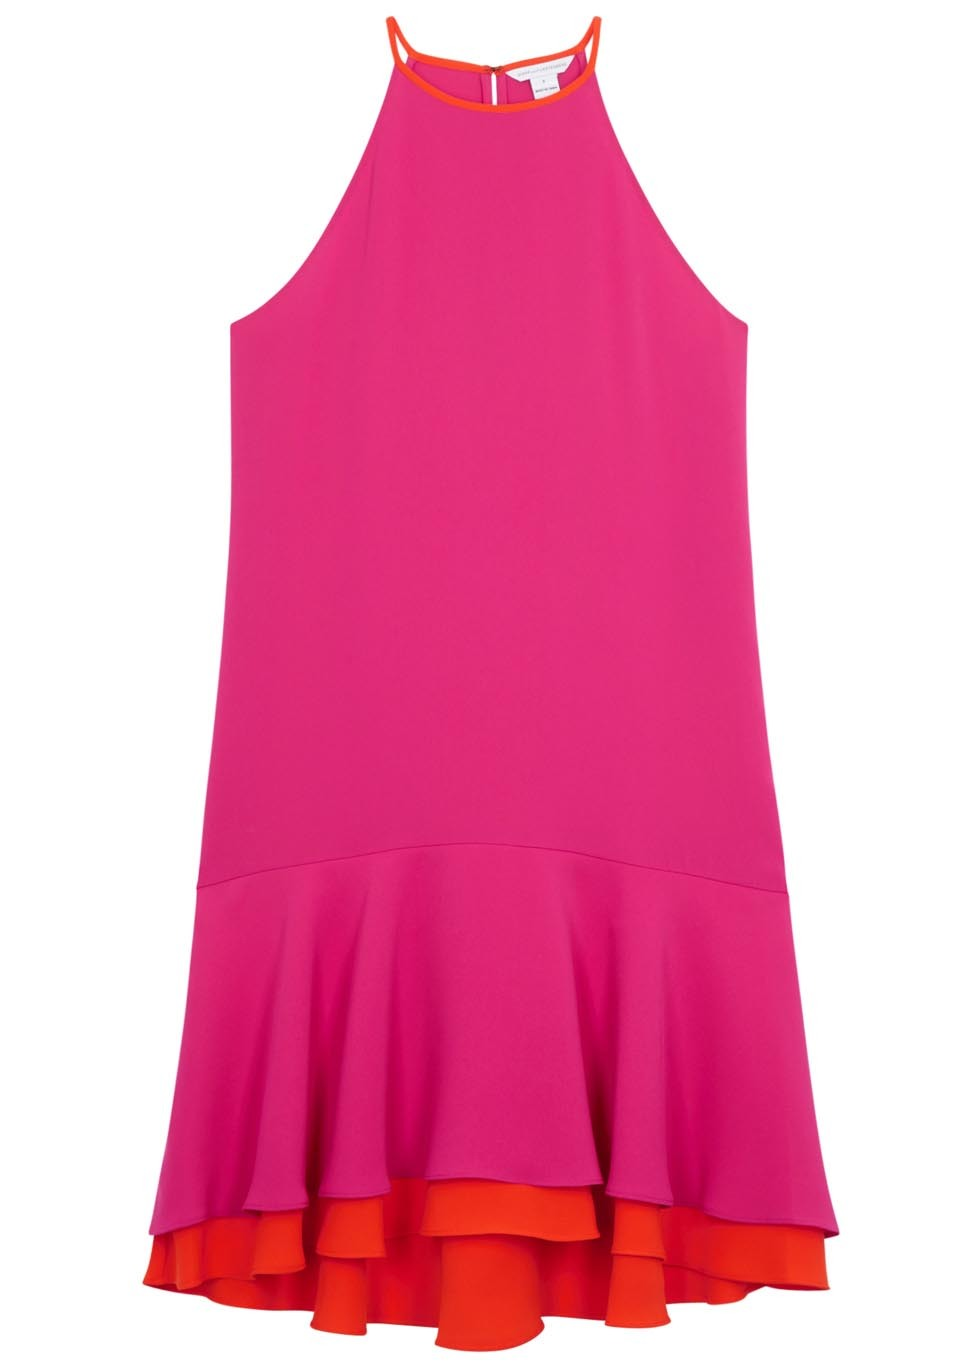 Kera Pink Layered Crepe Dress - style: shift; pattern: plain; sleeve style: sleeveless; predominant colour: hot pink; secondary colour: bright orange; occasions: evening; length: just above the knee; fit: body skimming; fibres: polyester/polyamide - mix; neckline: crew; hip detail: adds bulk at the hips; sleeve length: sleeveless; texture group: crepes; pattern type: fabric; multicoloured: multicoloured; season: s/s 2016; wardrobe: event